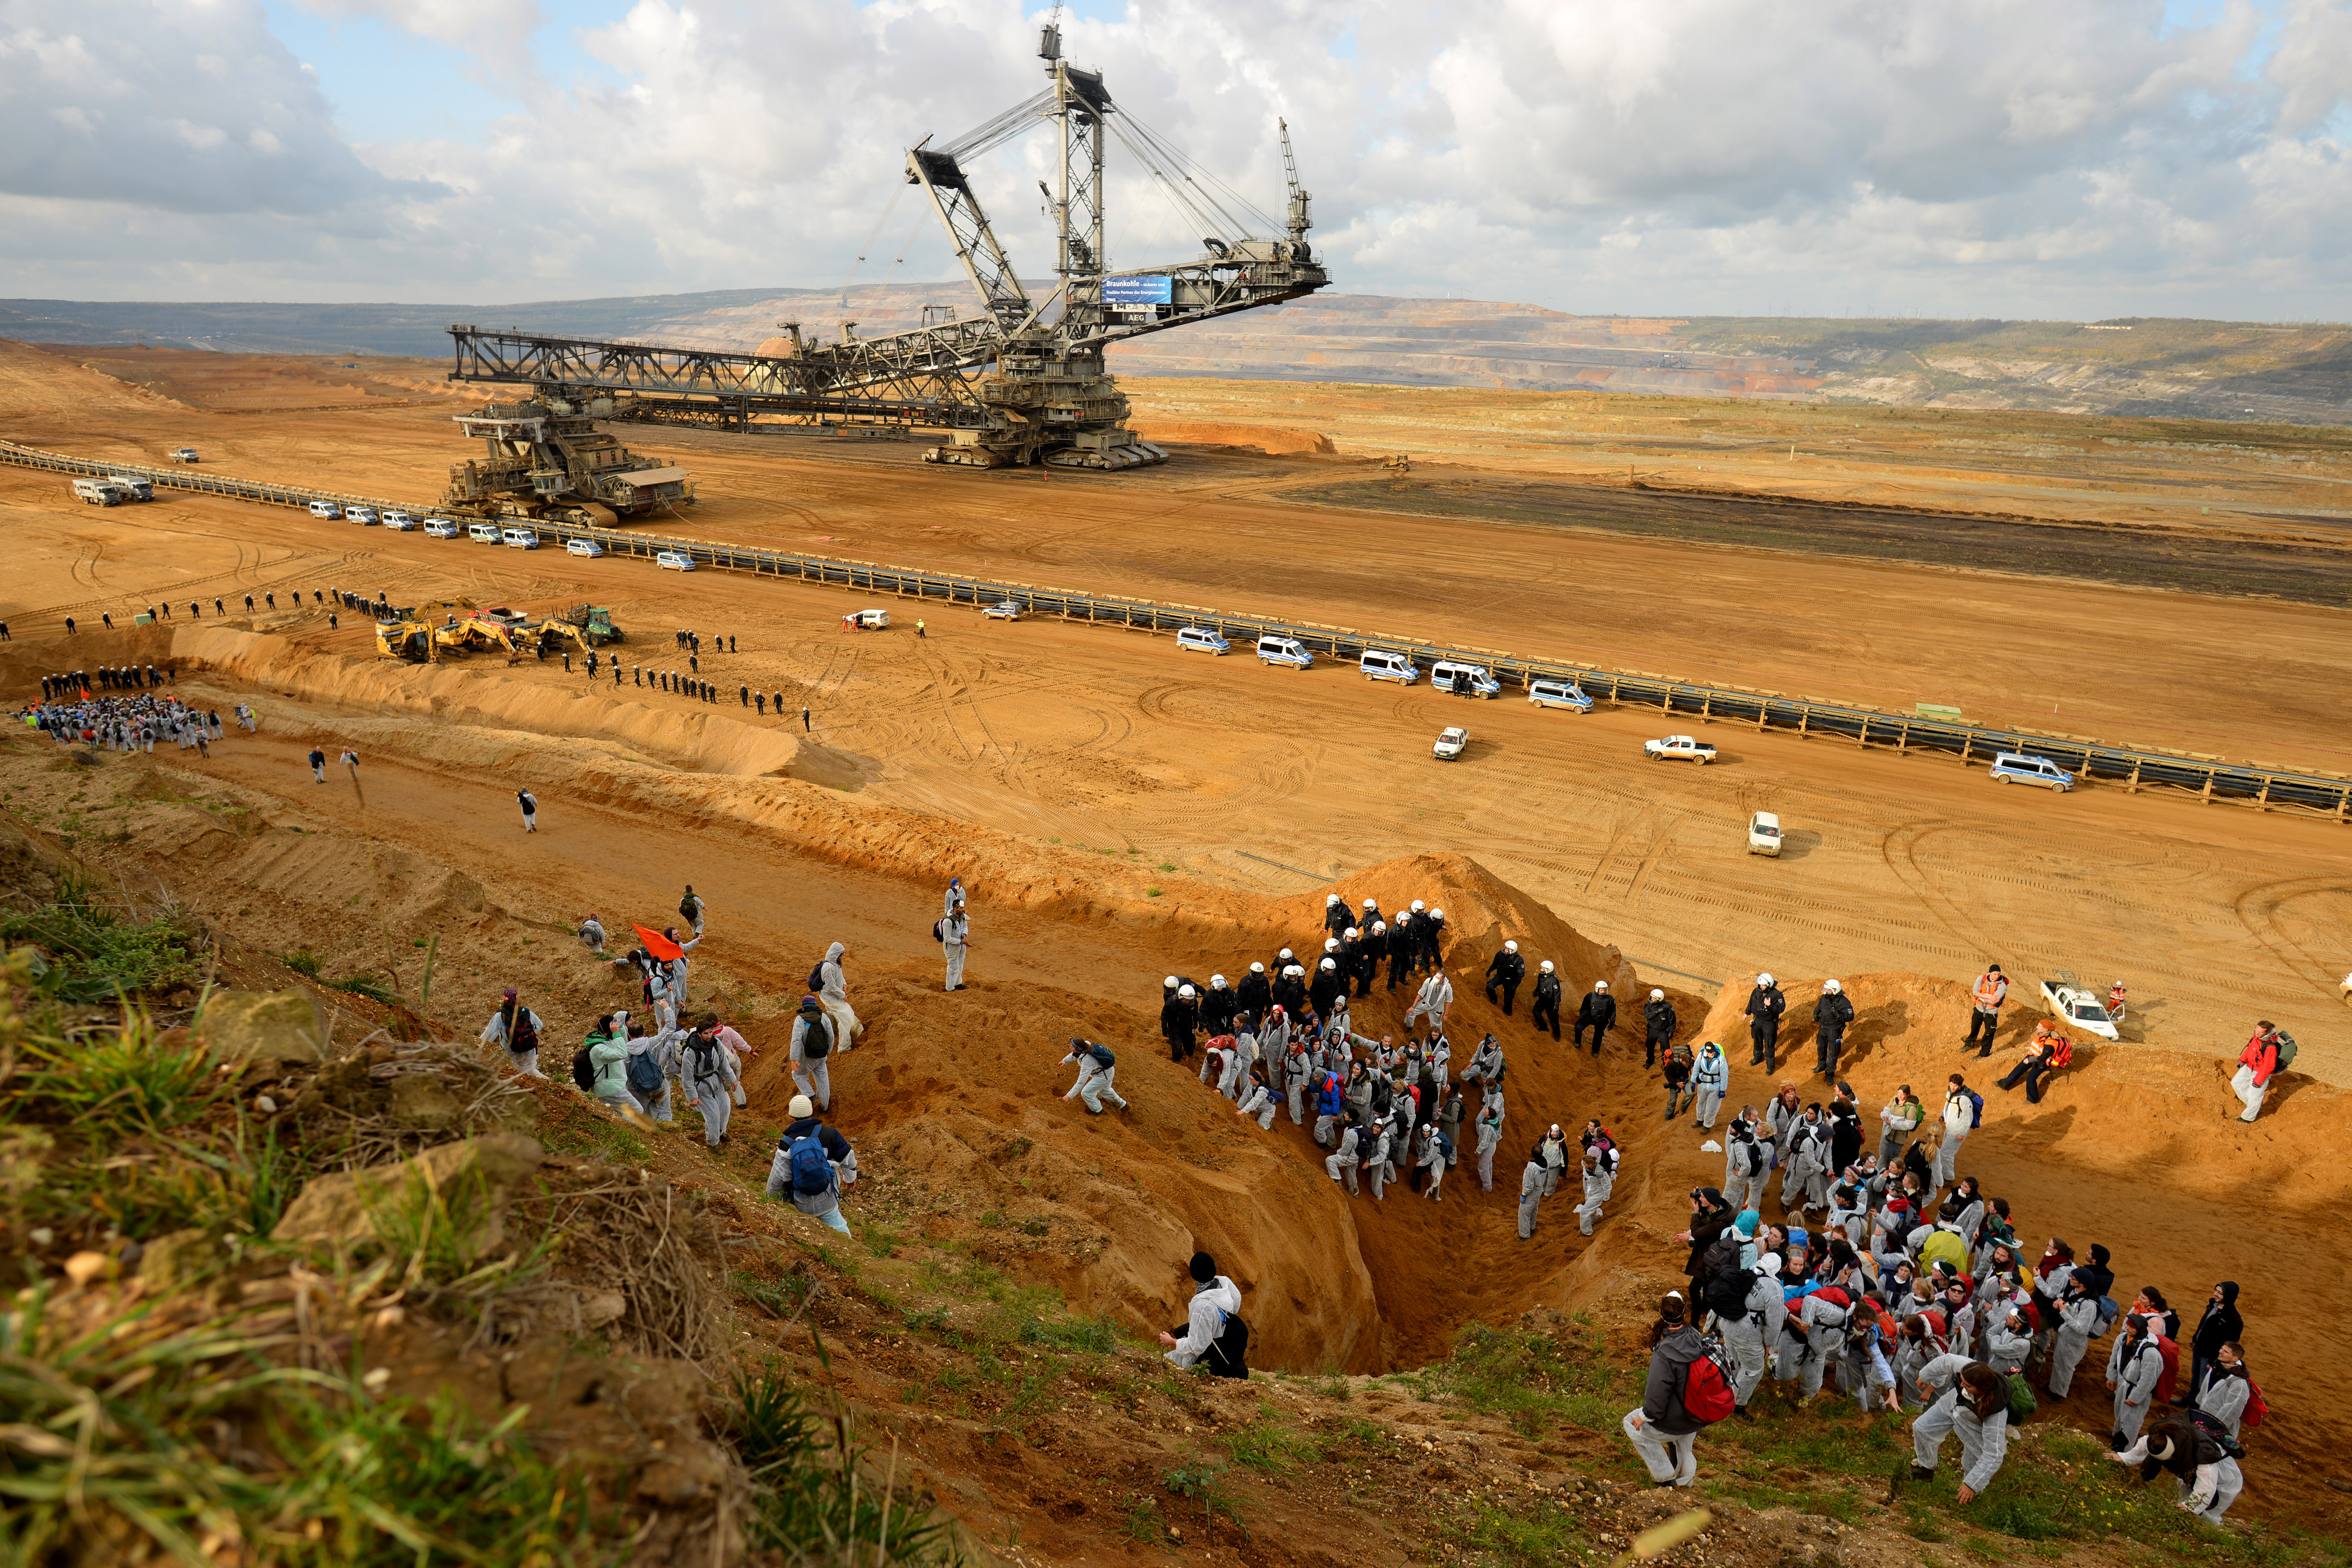 Protesters of climate activists group 'Ende Gelaende' try to blockade coal operations at Hambach opencast mining in the Rhineland prior to the UN Climate Change Conference COP23, close to Kerpen, Germany, 05 November 2017. The 23rd session of the United Nations Framework Convention on Climate Change Conference (UNFCCC), the 2017 UN Climate Change Conference COP23 will take place from 06 to 17 November in Bonn, the seat of the Climate Change Secretariat, under the presidency of Fiji.